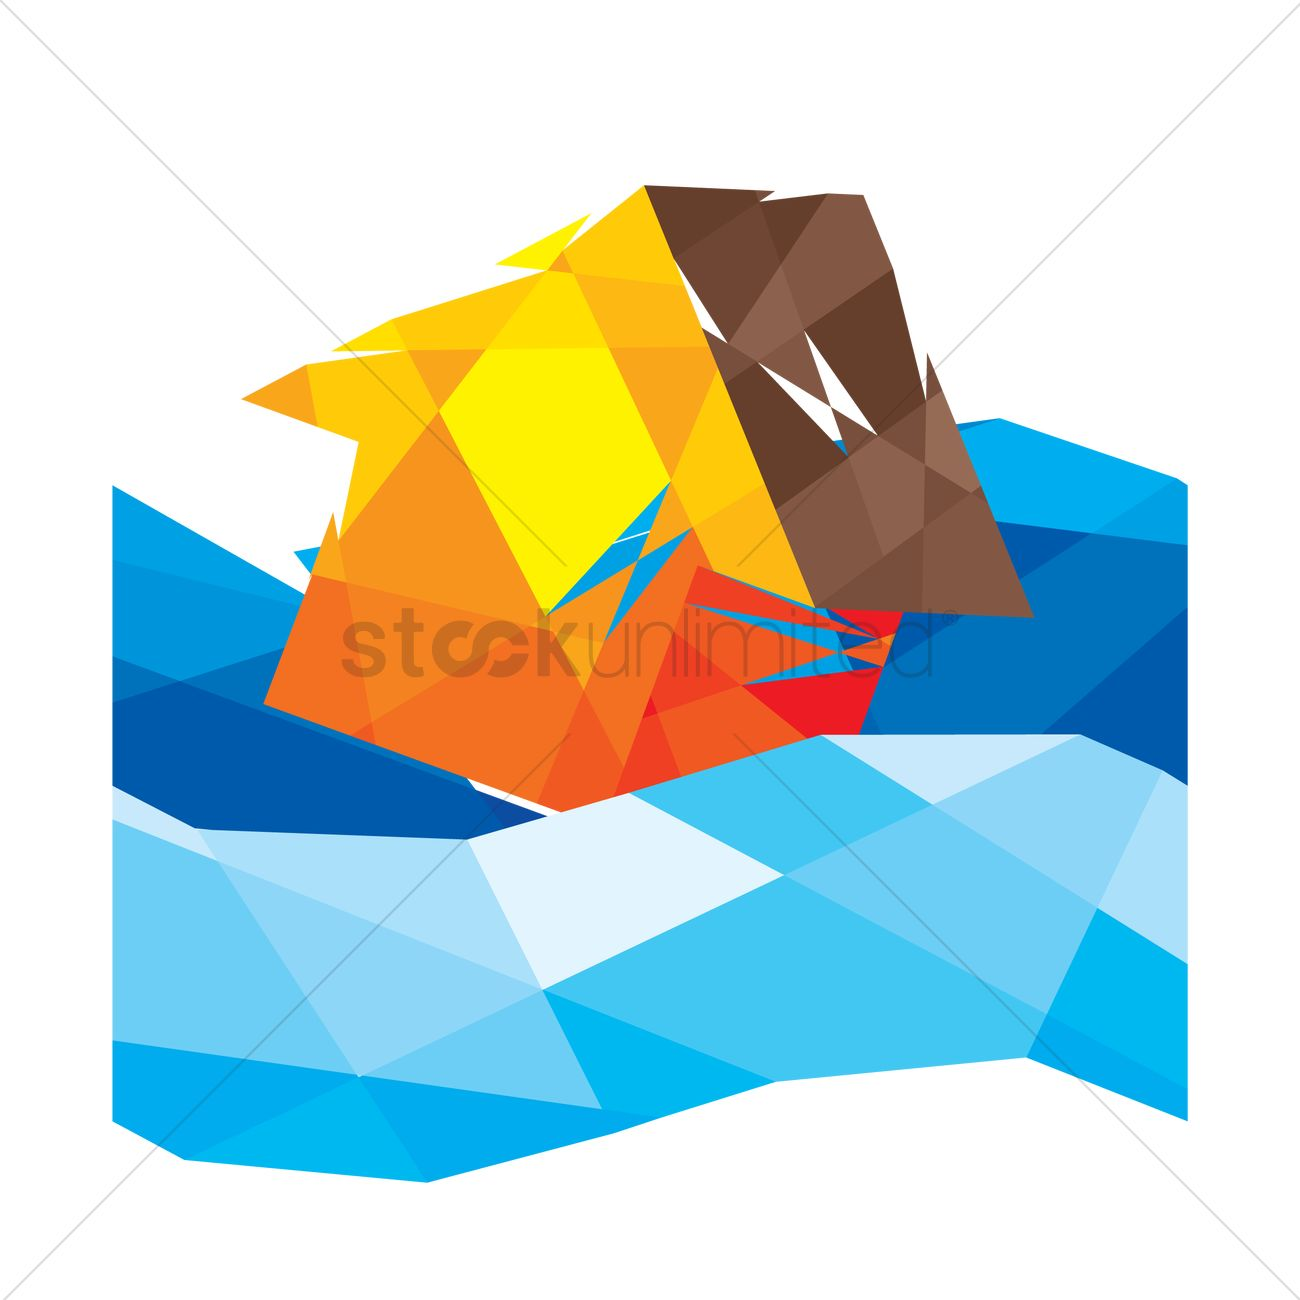 Free House in flood waters Vector Image - 1516992 | StockUnlimited on free house jpegs, free house models, free house textures, free house vector, free house illustrations, free house background, free house logo design, free house layout design, free house patterns, free house drawing, free house designing, free house art, free house design plans, free house blueprints, free house borders, free house design templates, free house sketch, free house painting, free house clipart, free house drafting,